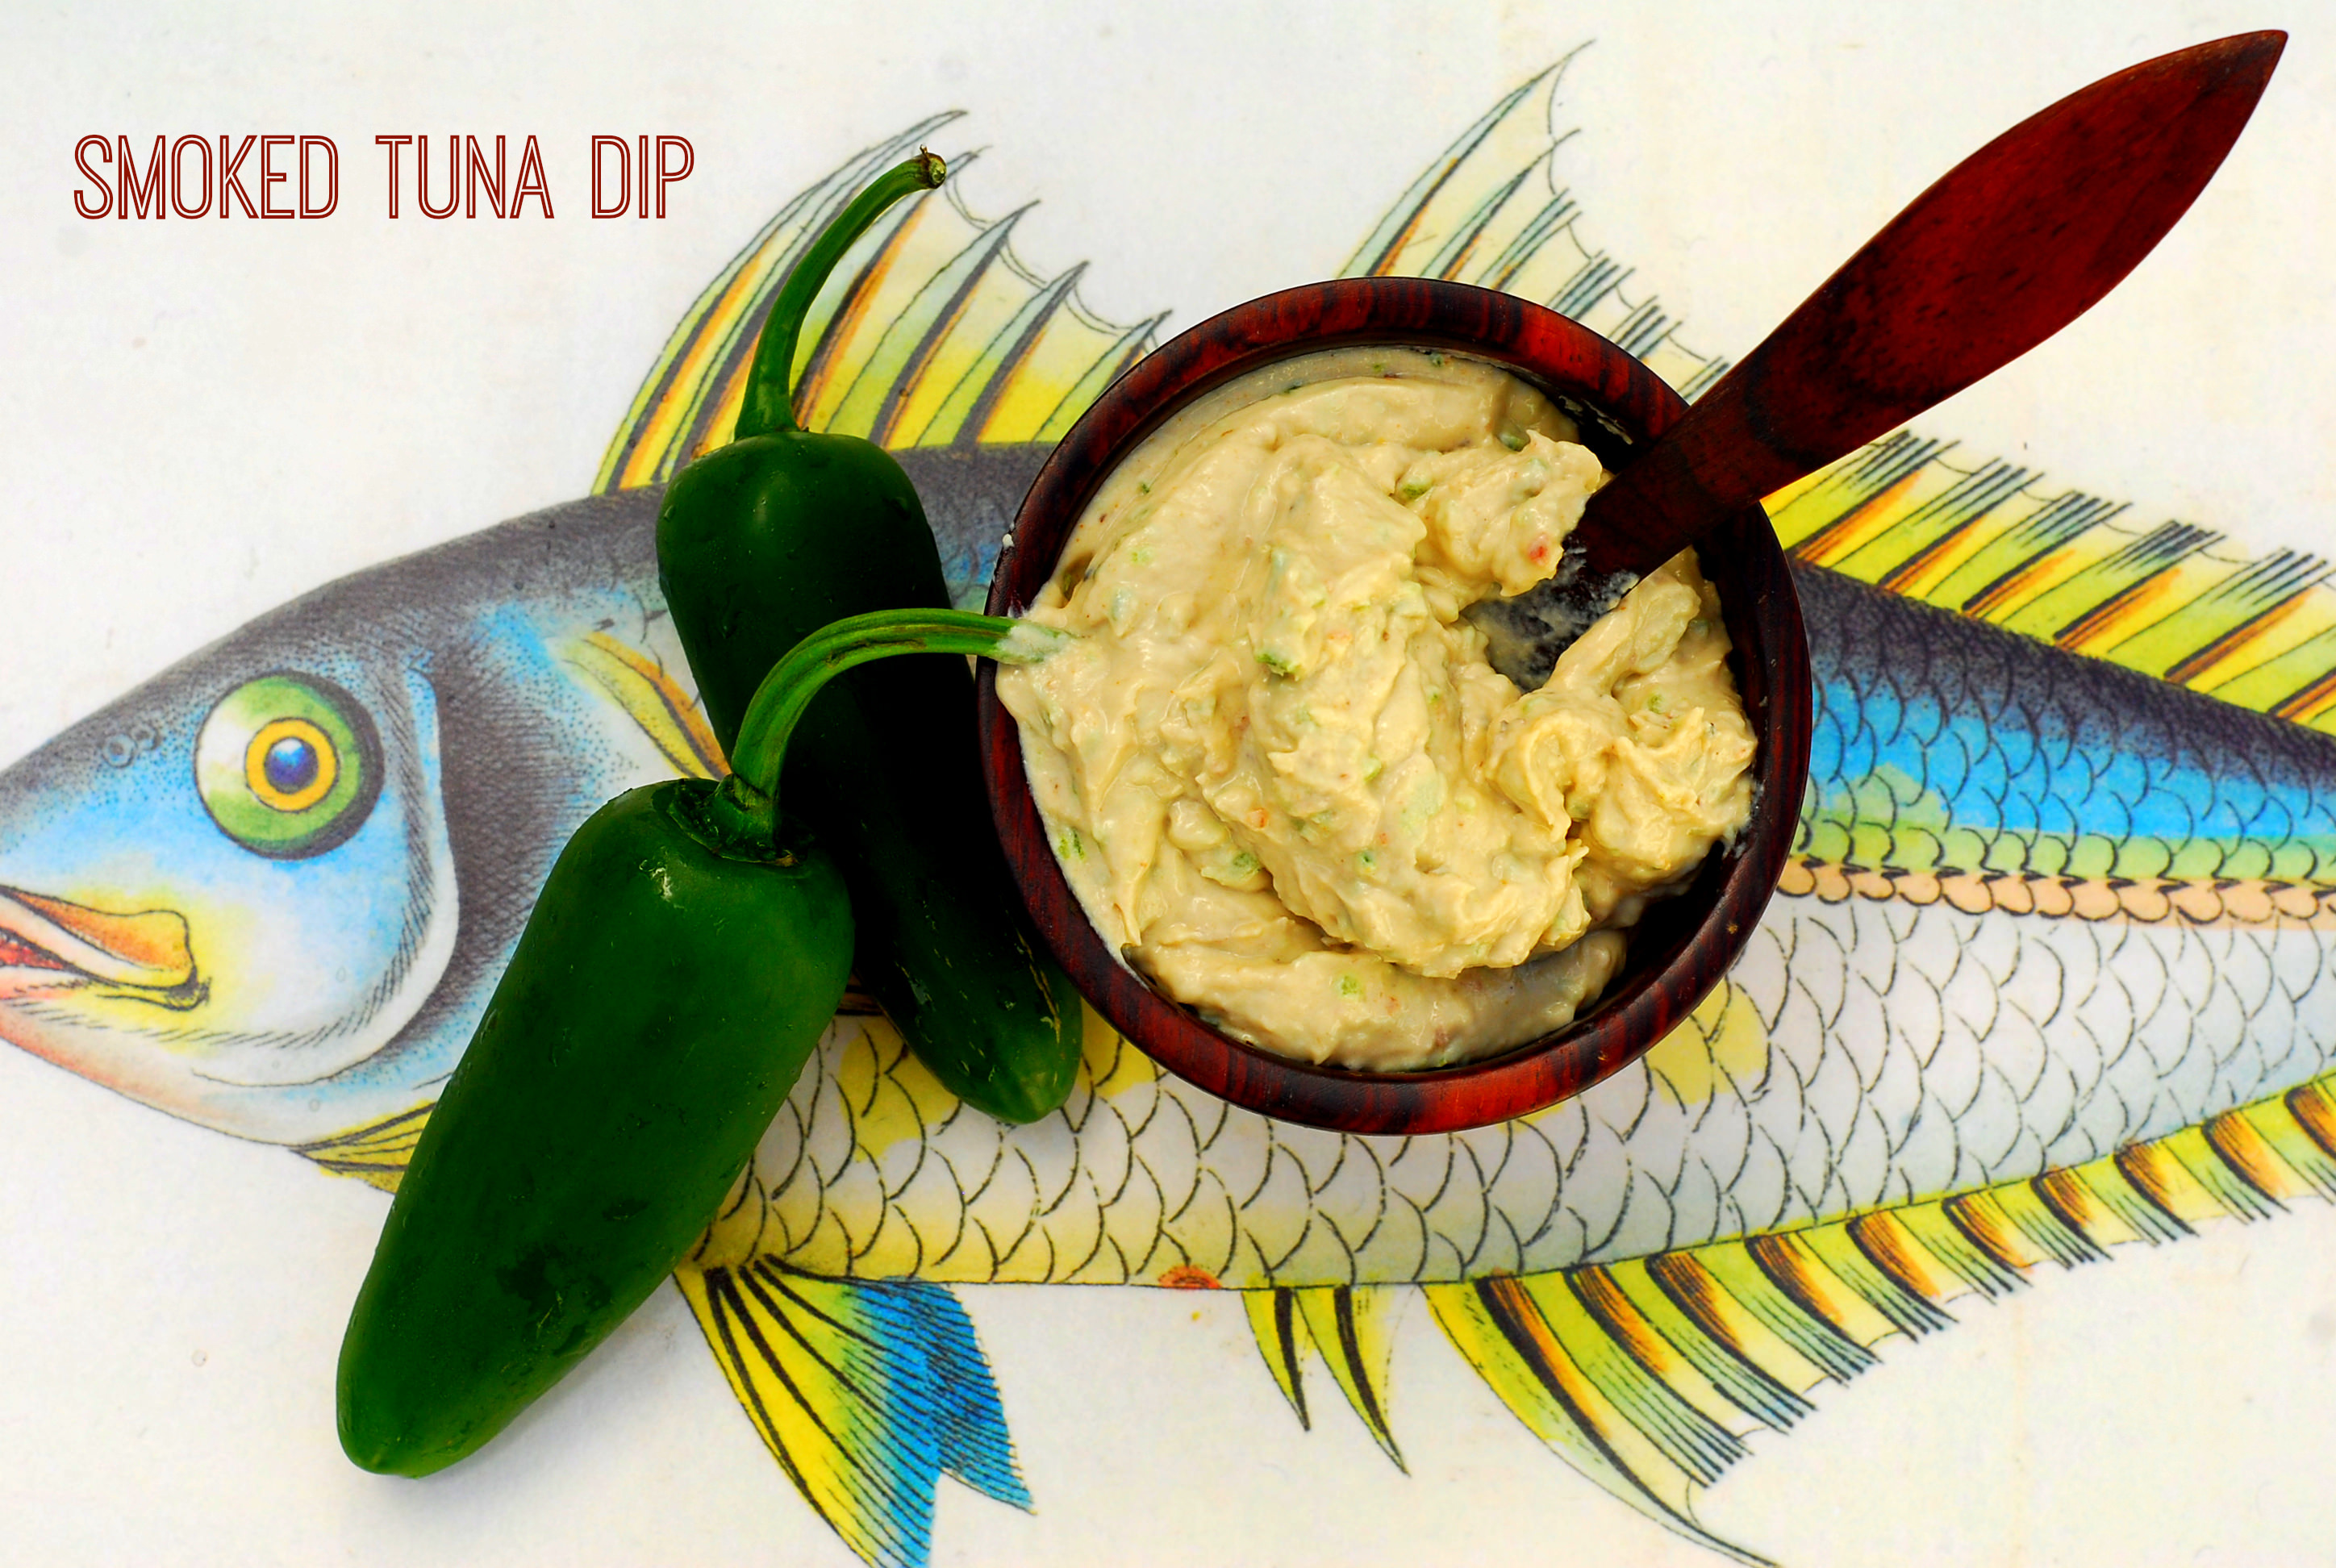 smoked fish dip, south florida smoked fish dip, smoked tuna dip, superbowl recipes